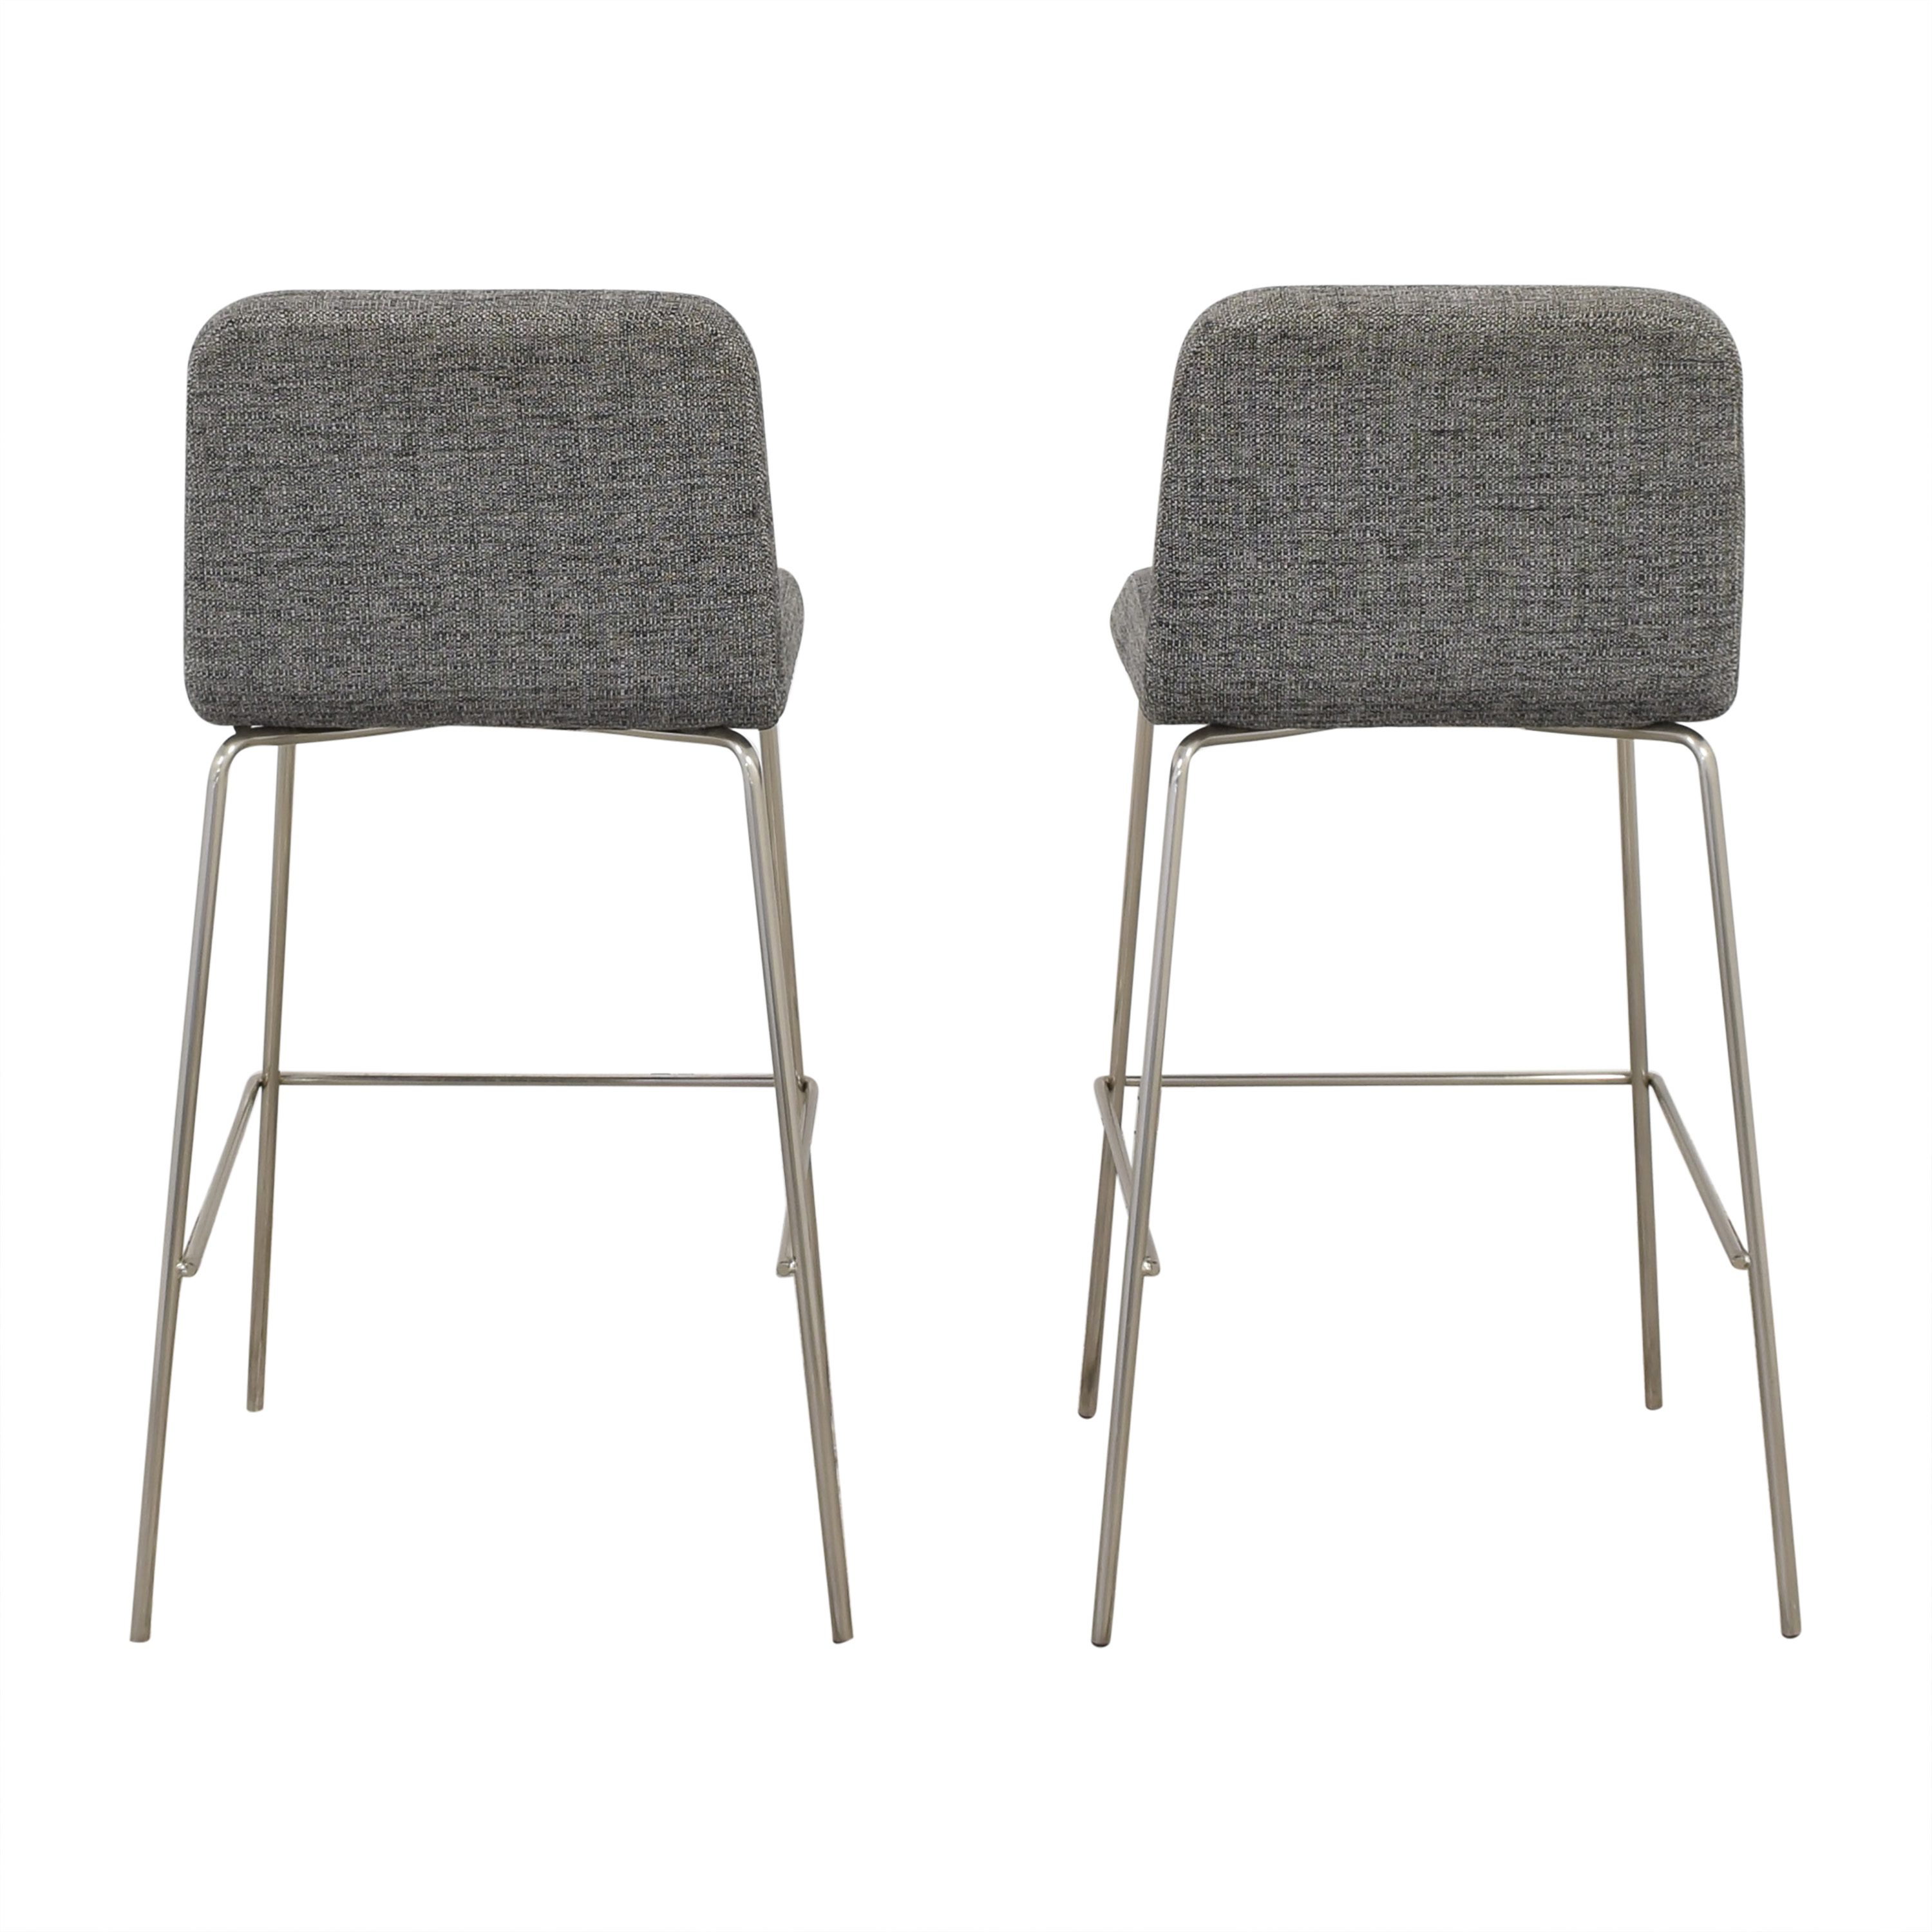 CB2 Stools / Chairs